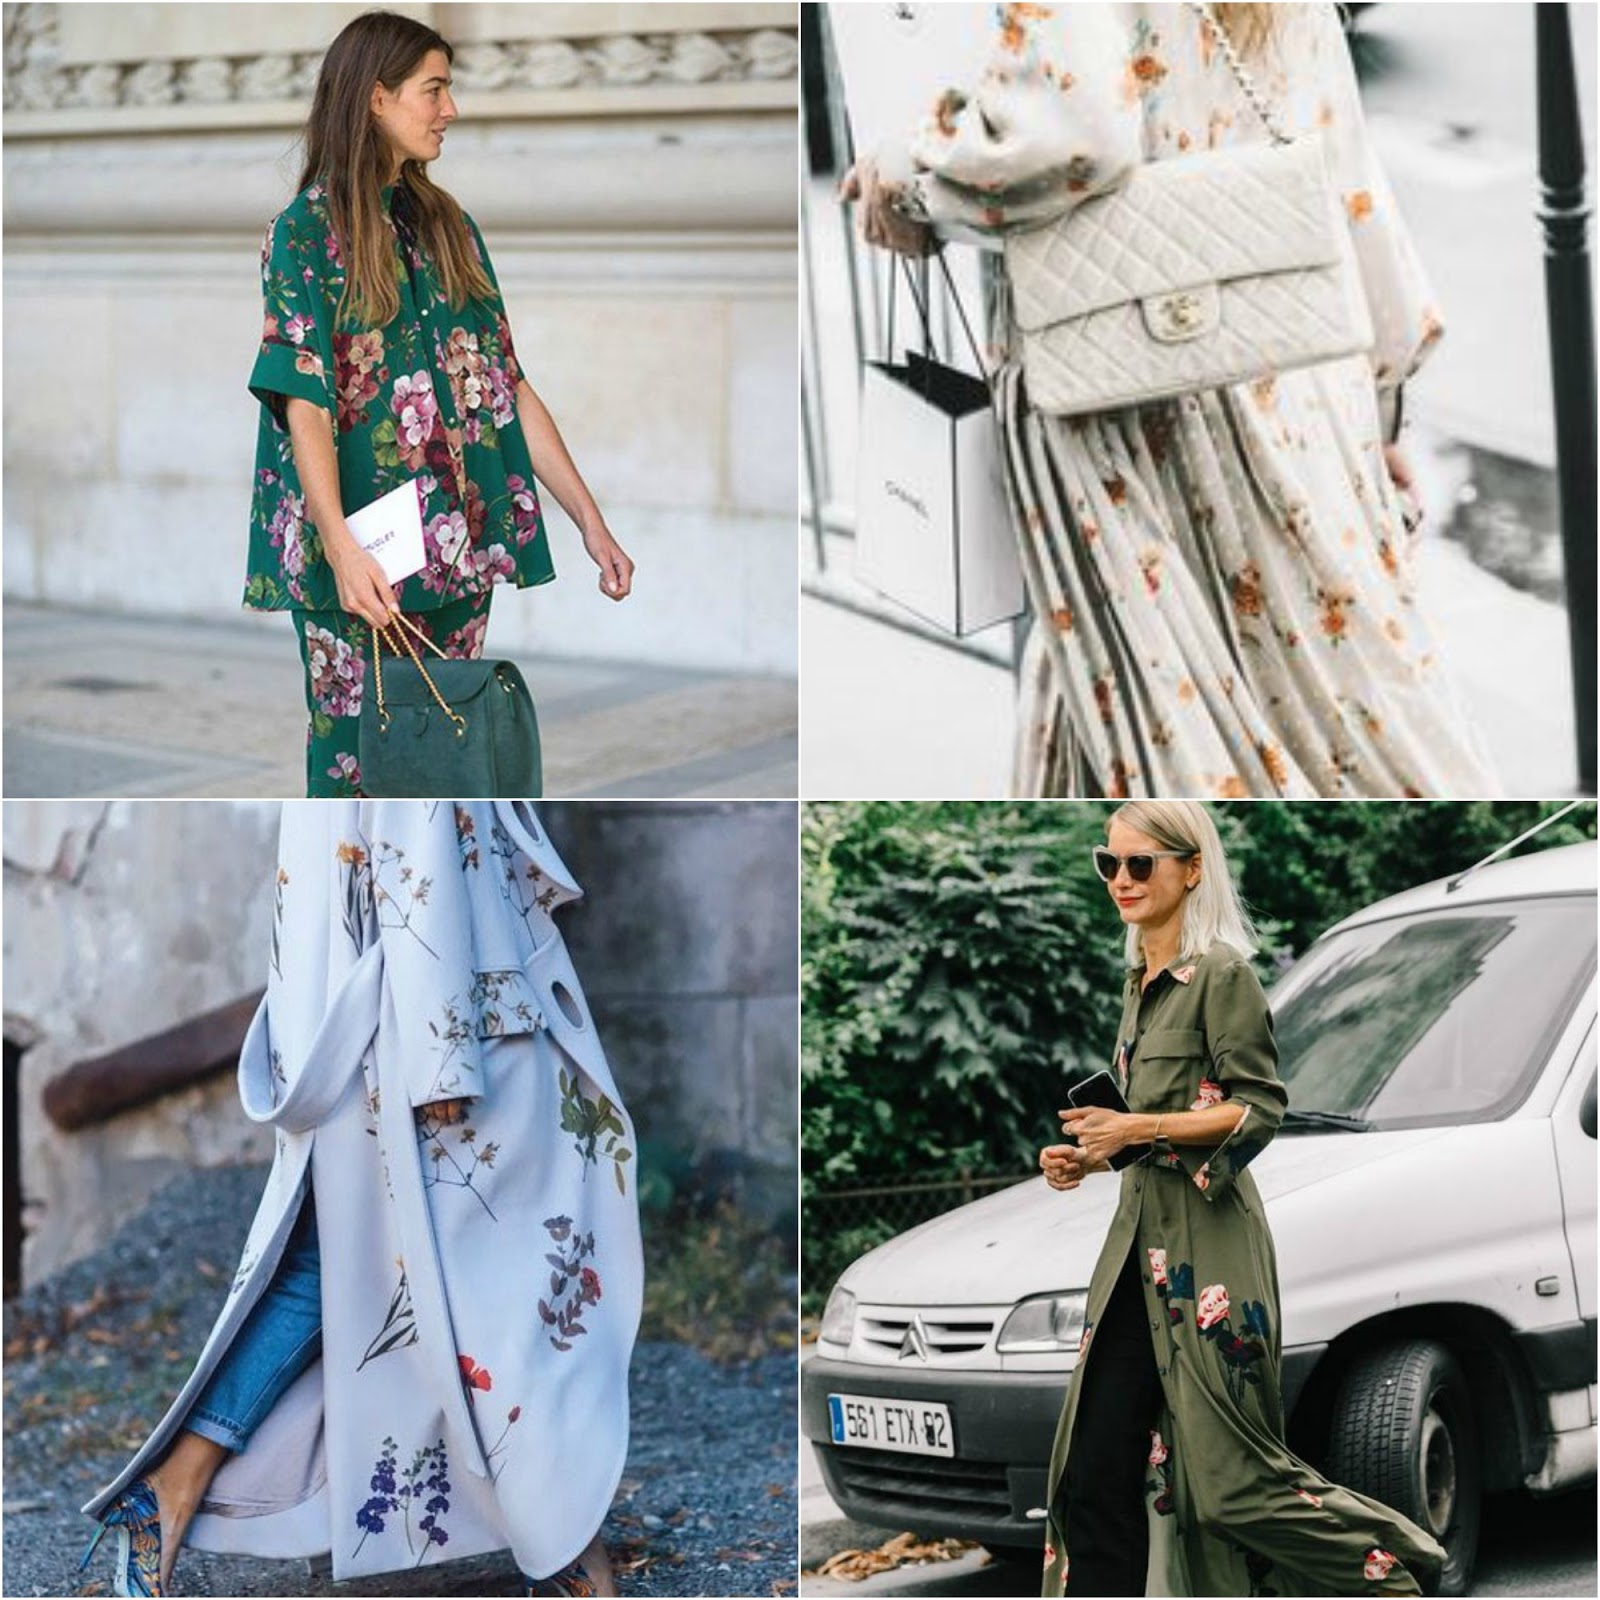 How To Style Florals For Spring